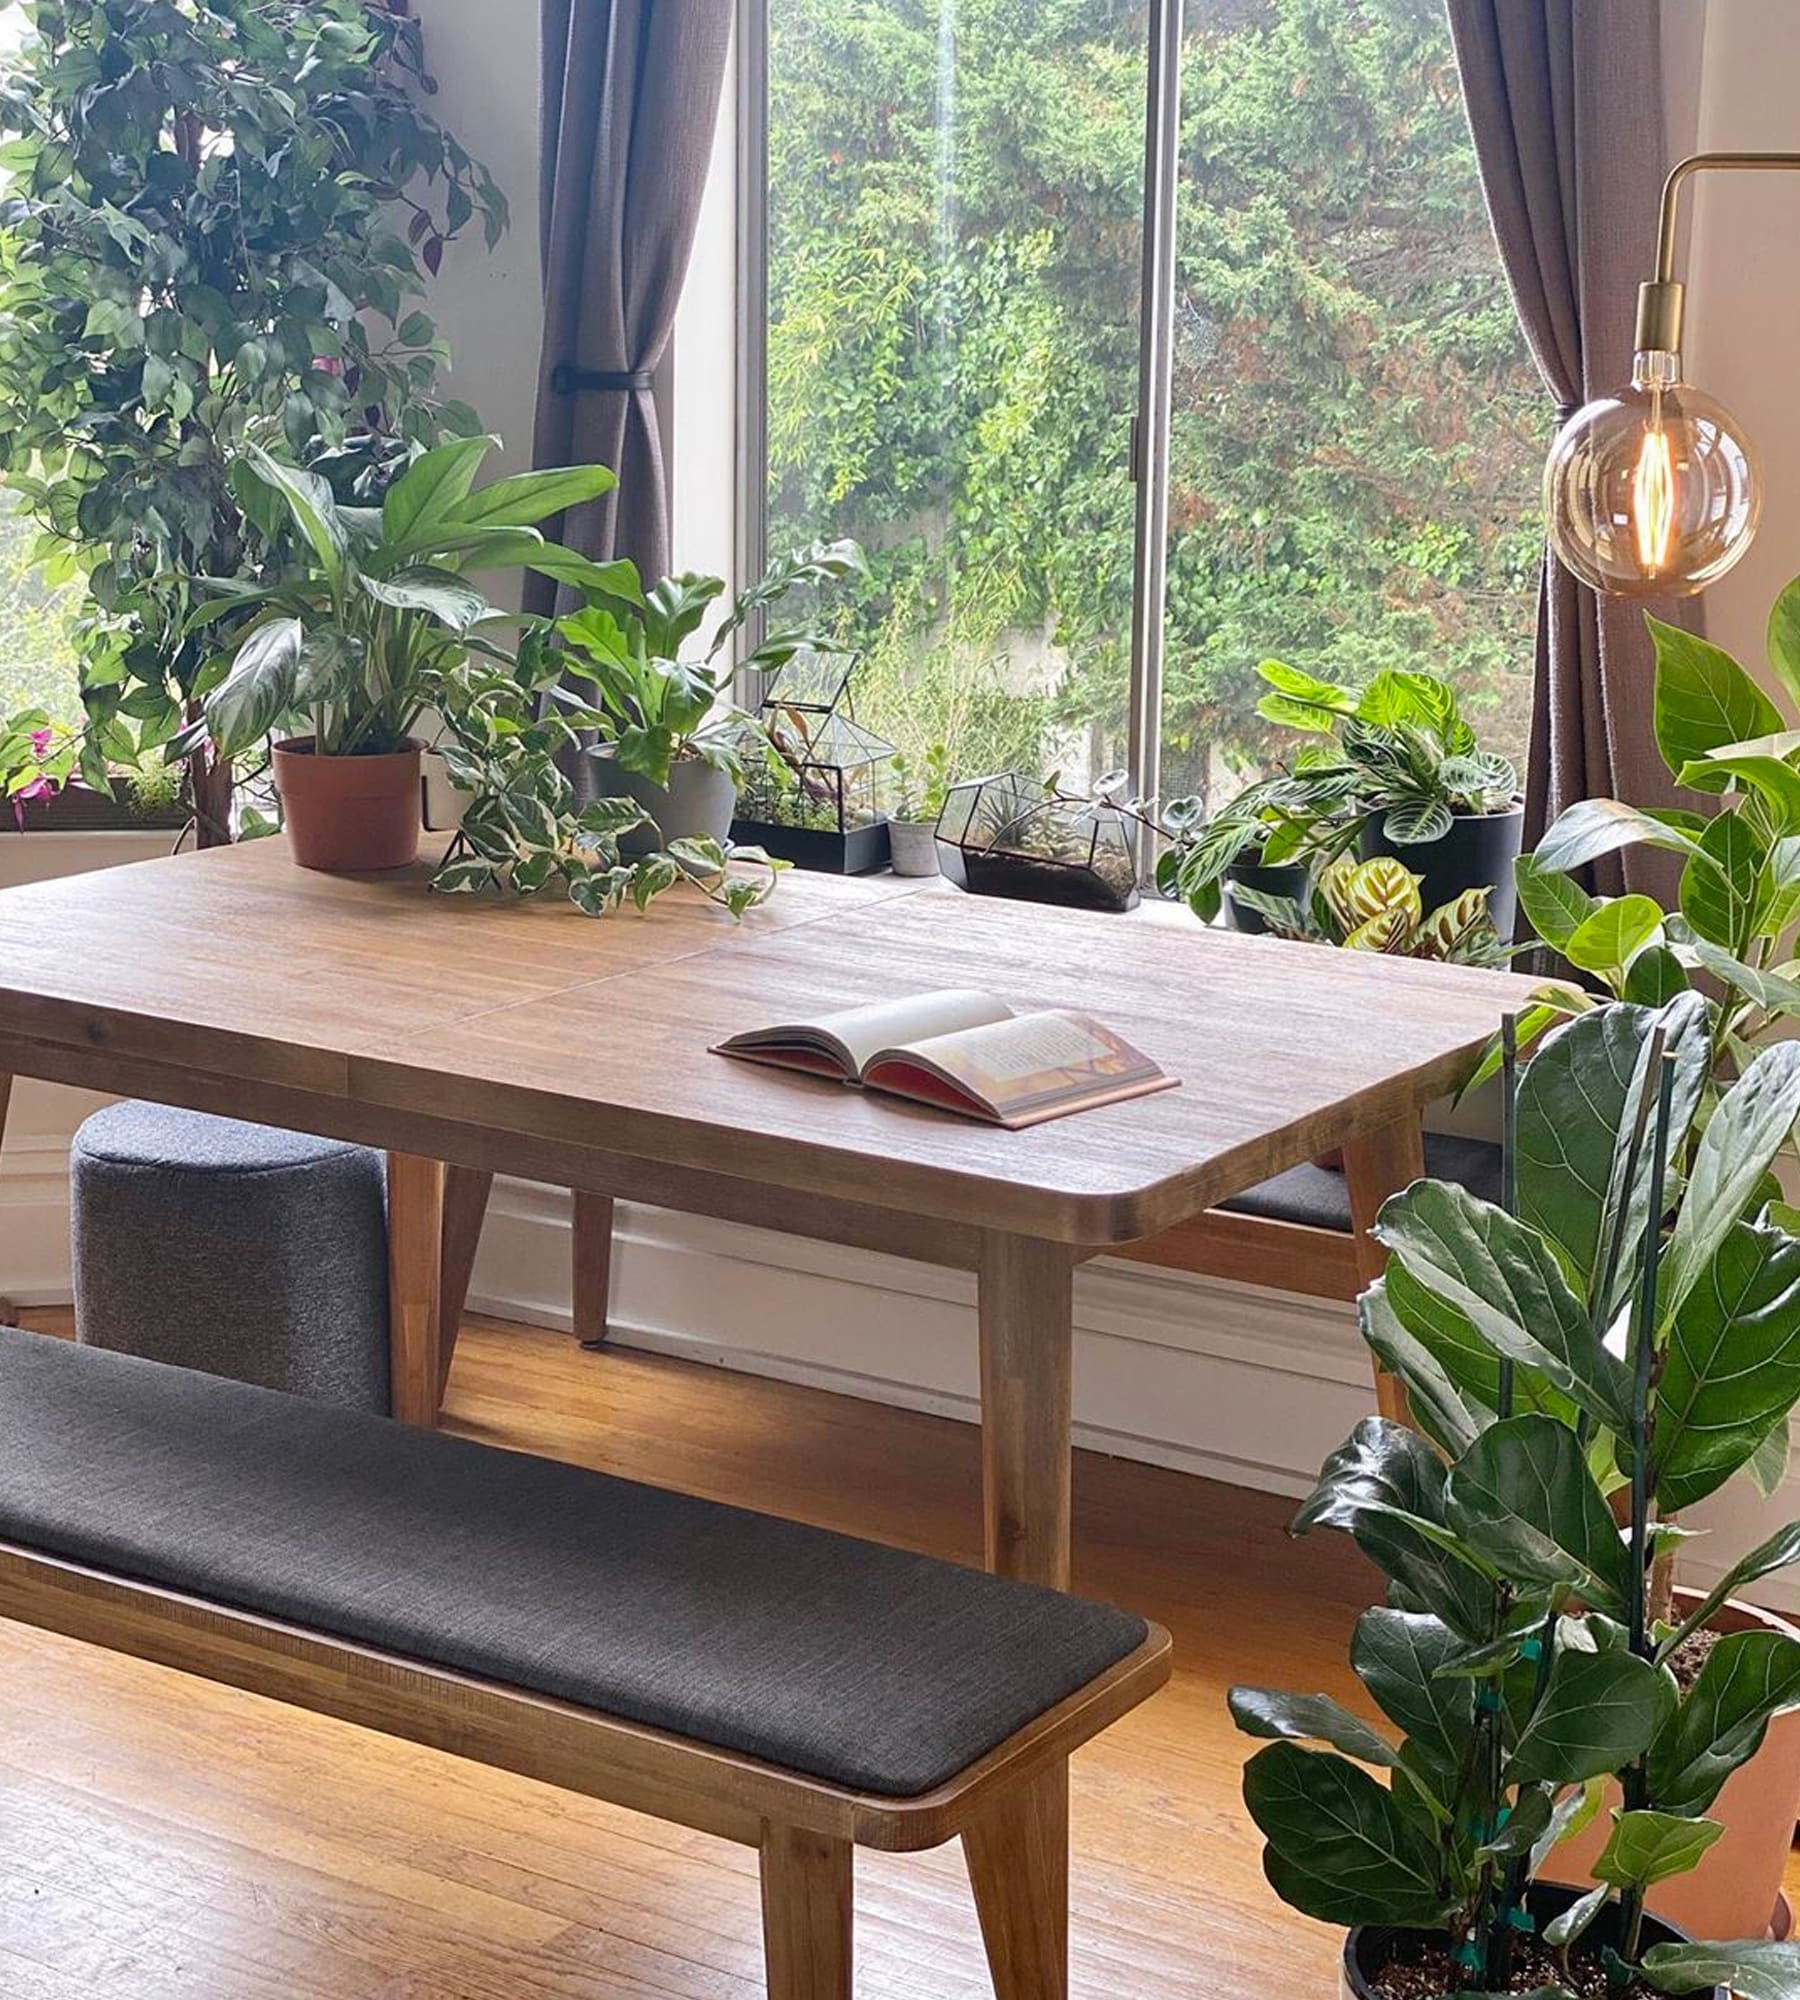 wooden dining table and bench set in dining area with plants